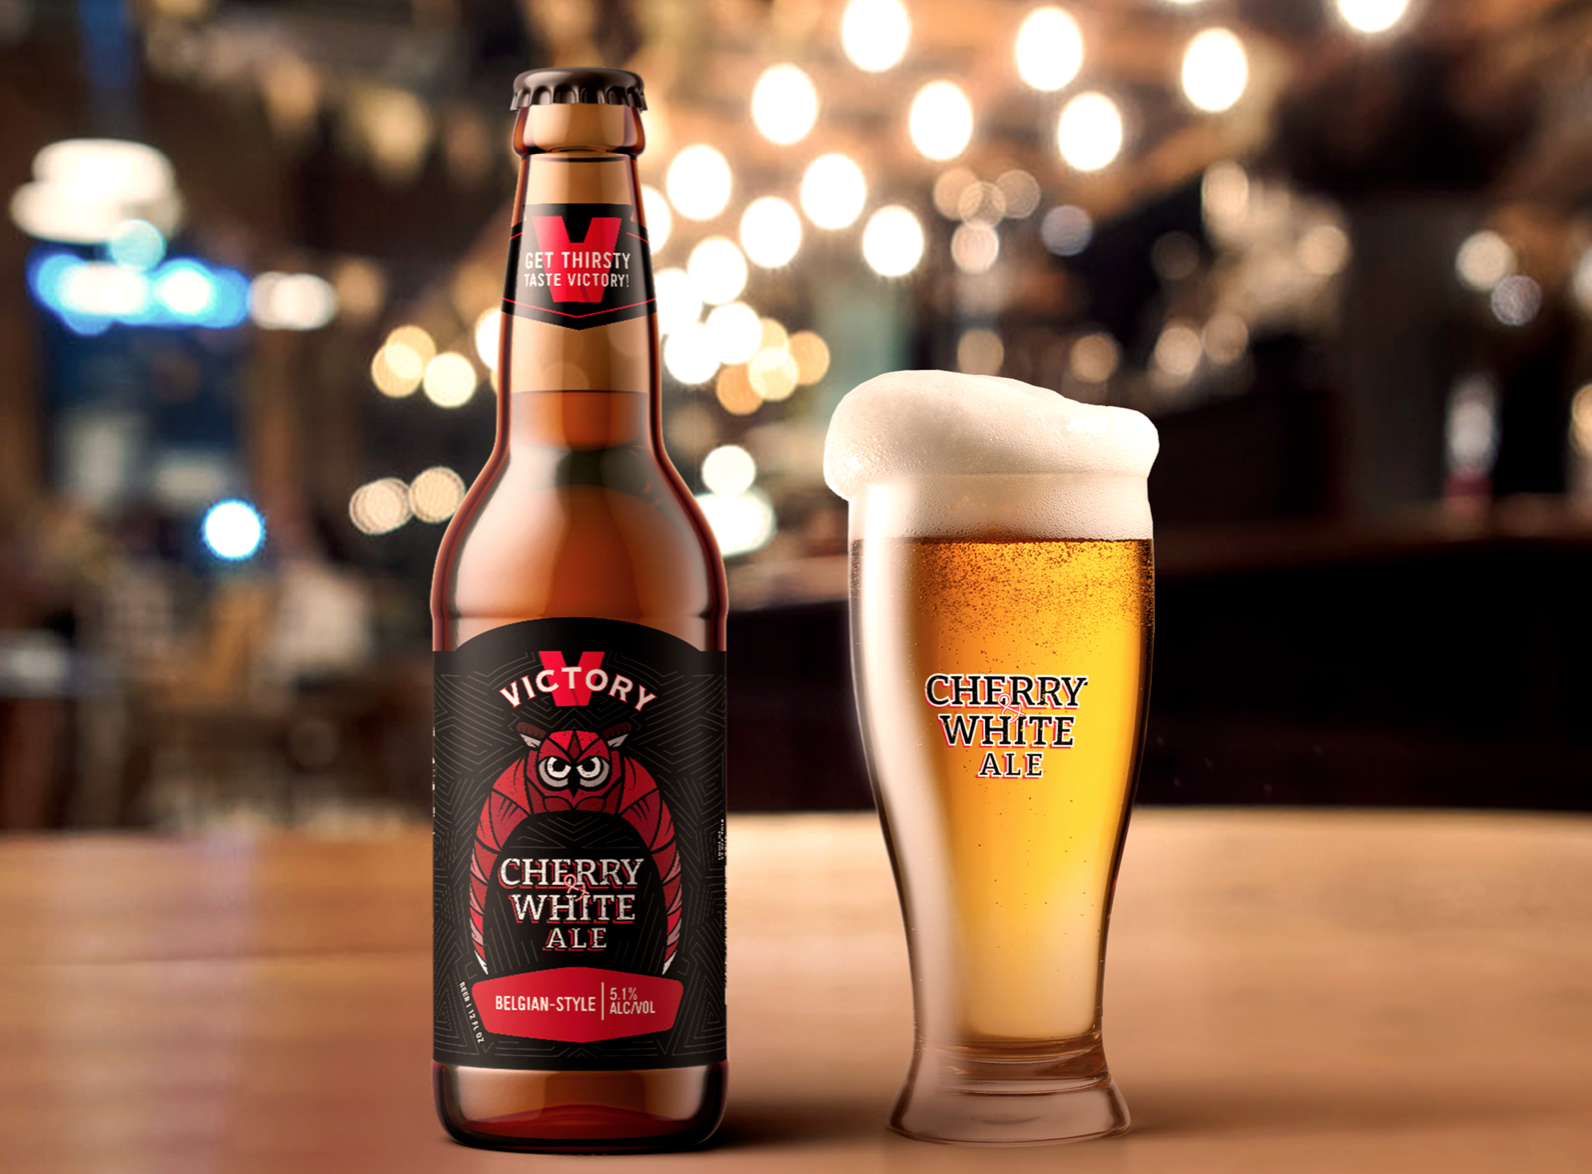 Cherry & White Ale bottle packaging in a restaurant